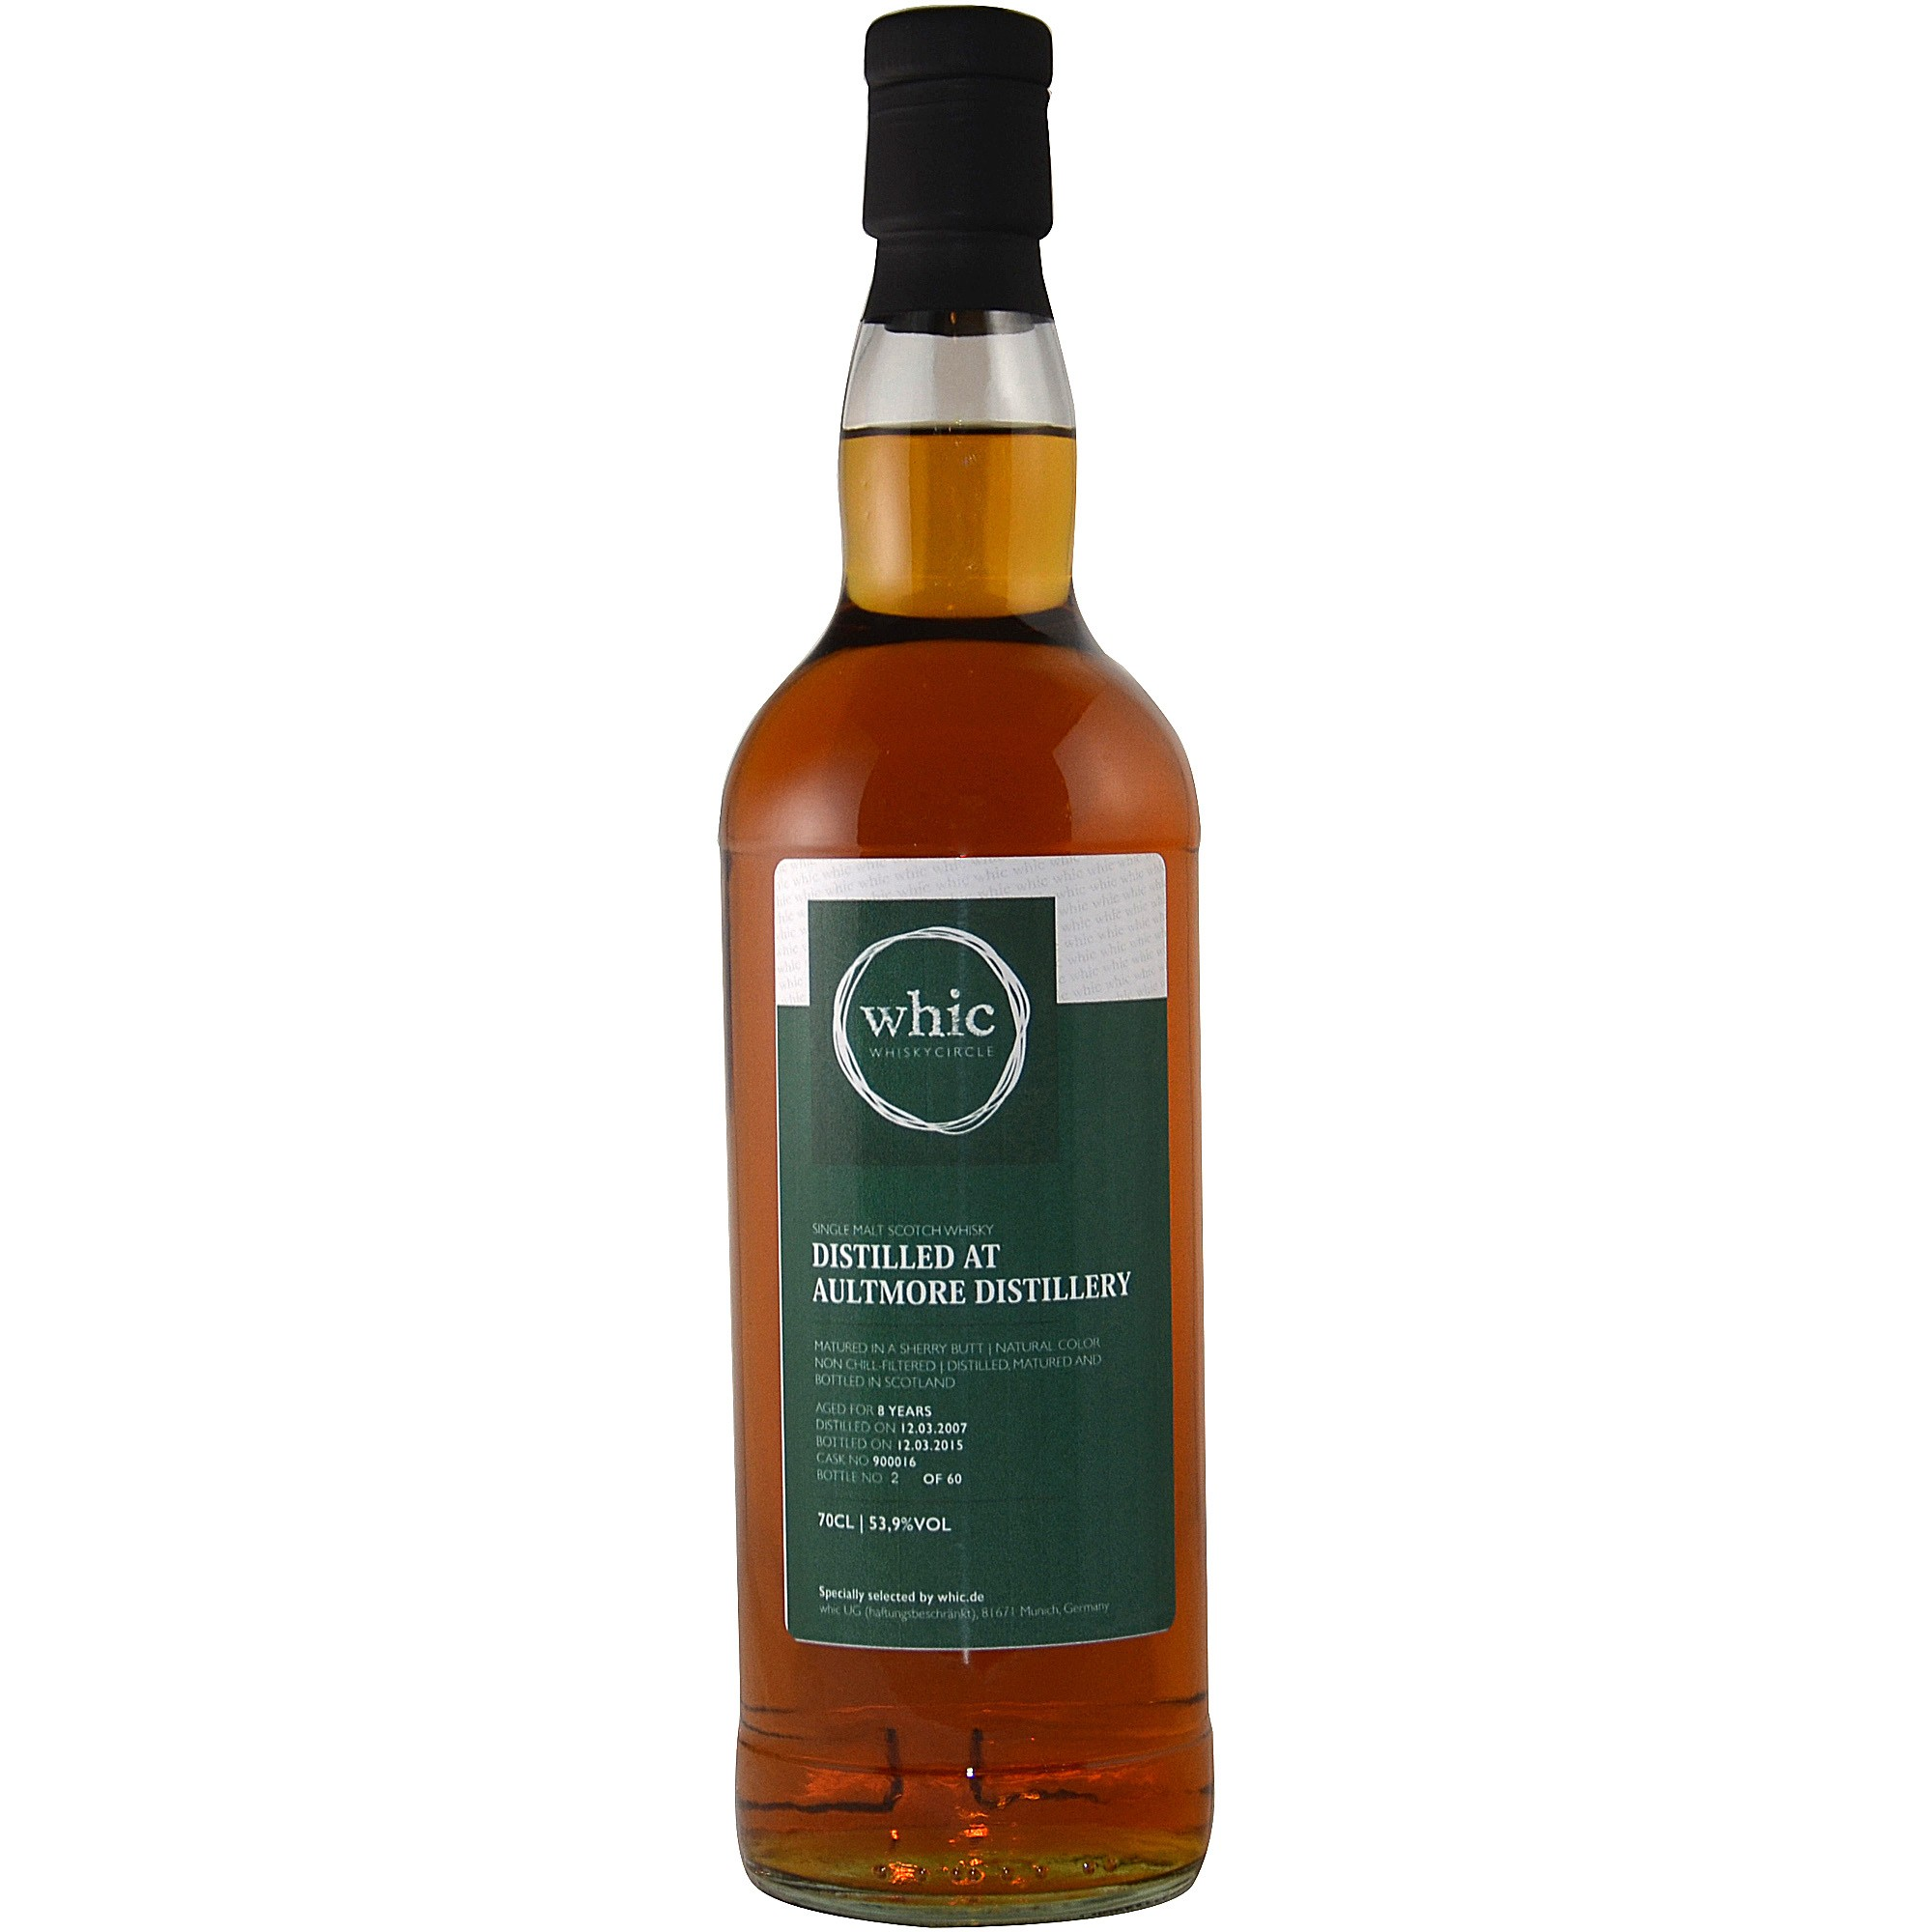 Aultmore 2007/2015 Sherry Butt (whic)